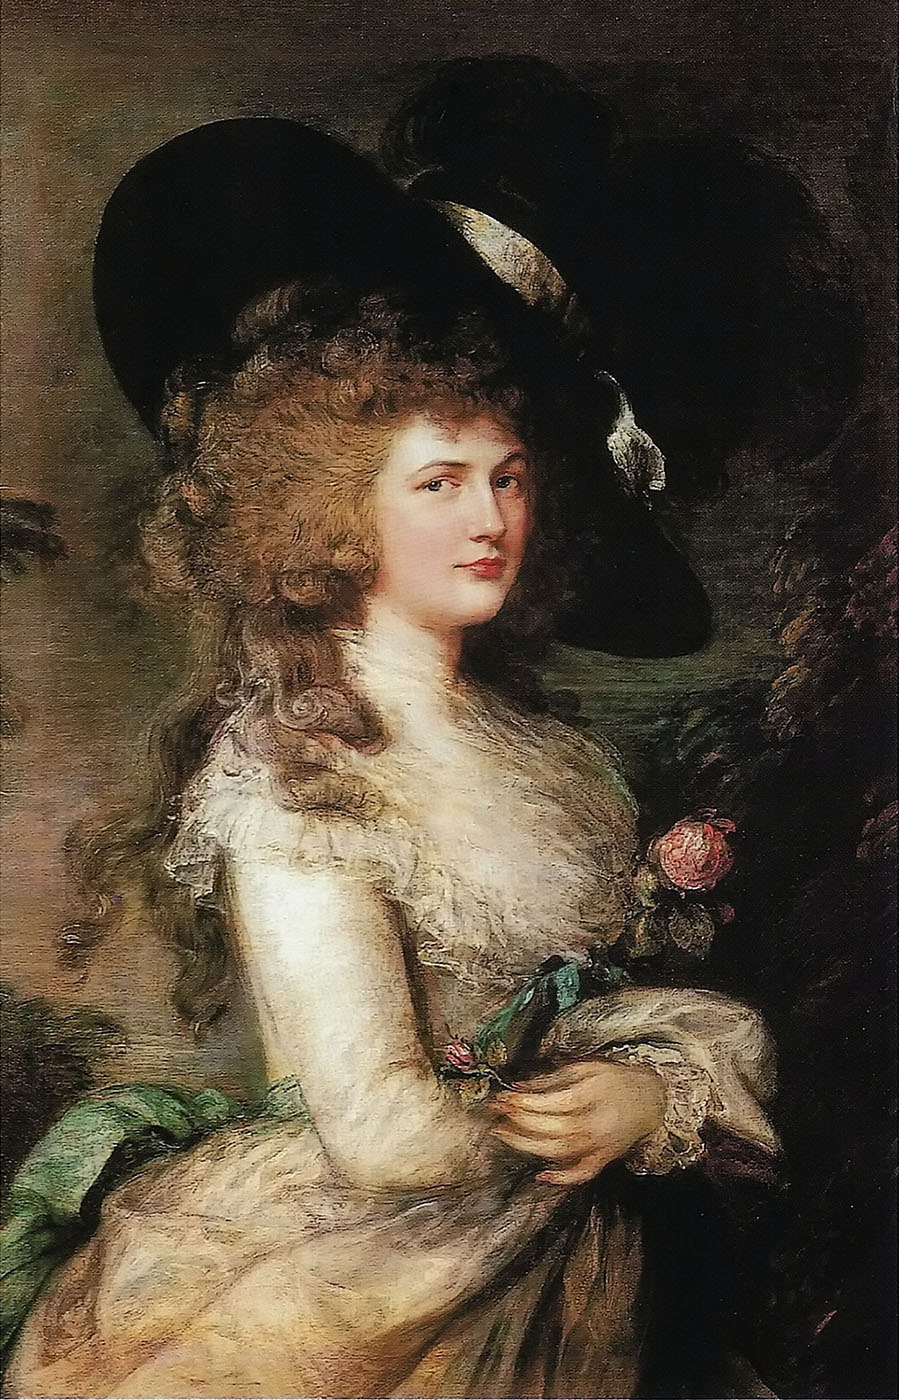 Thomas Gainsborough. Retrato de la duquesa de Devonshire. Hacia 1785-1787. Chatsworth House.